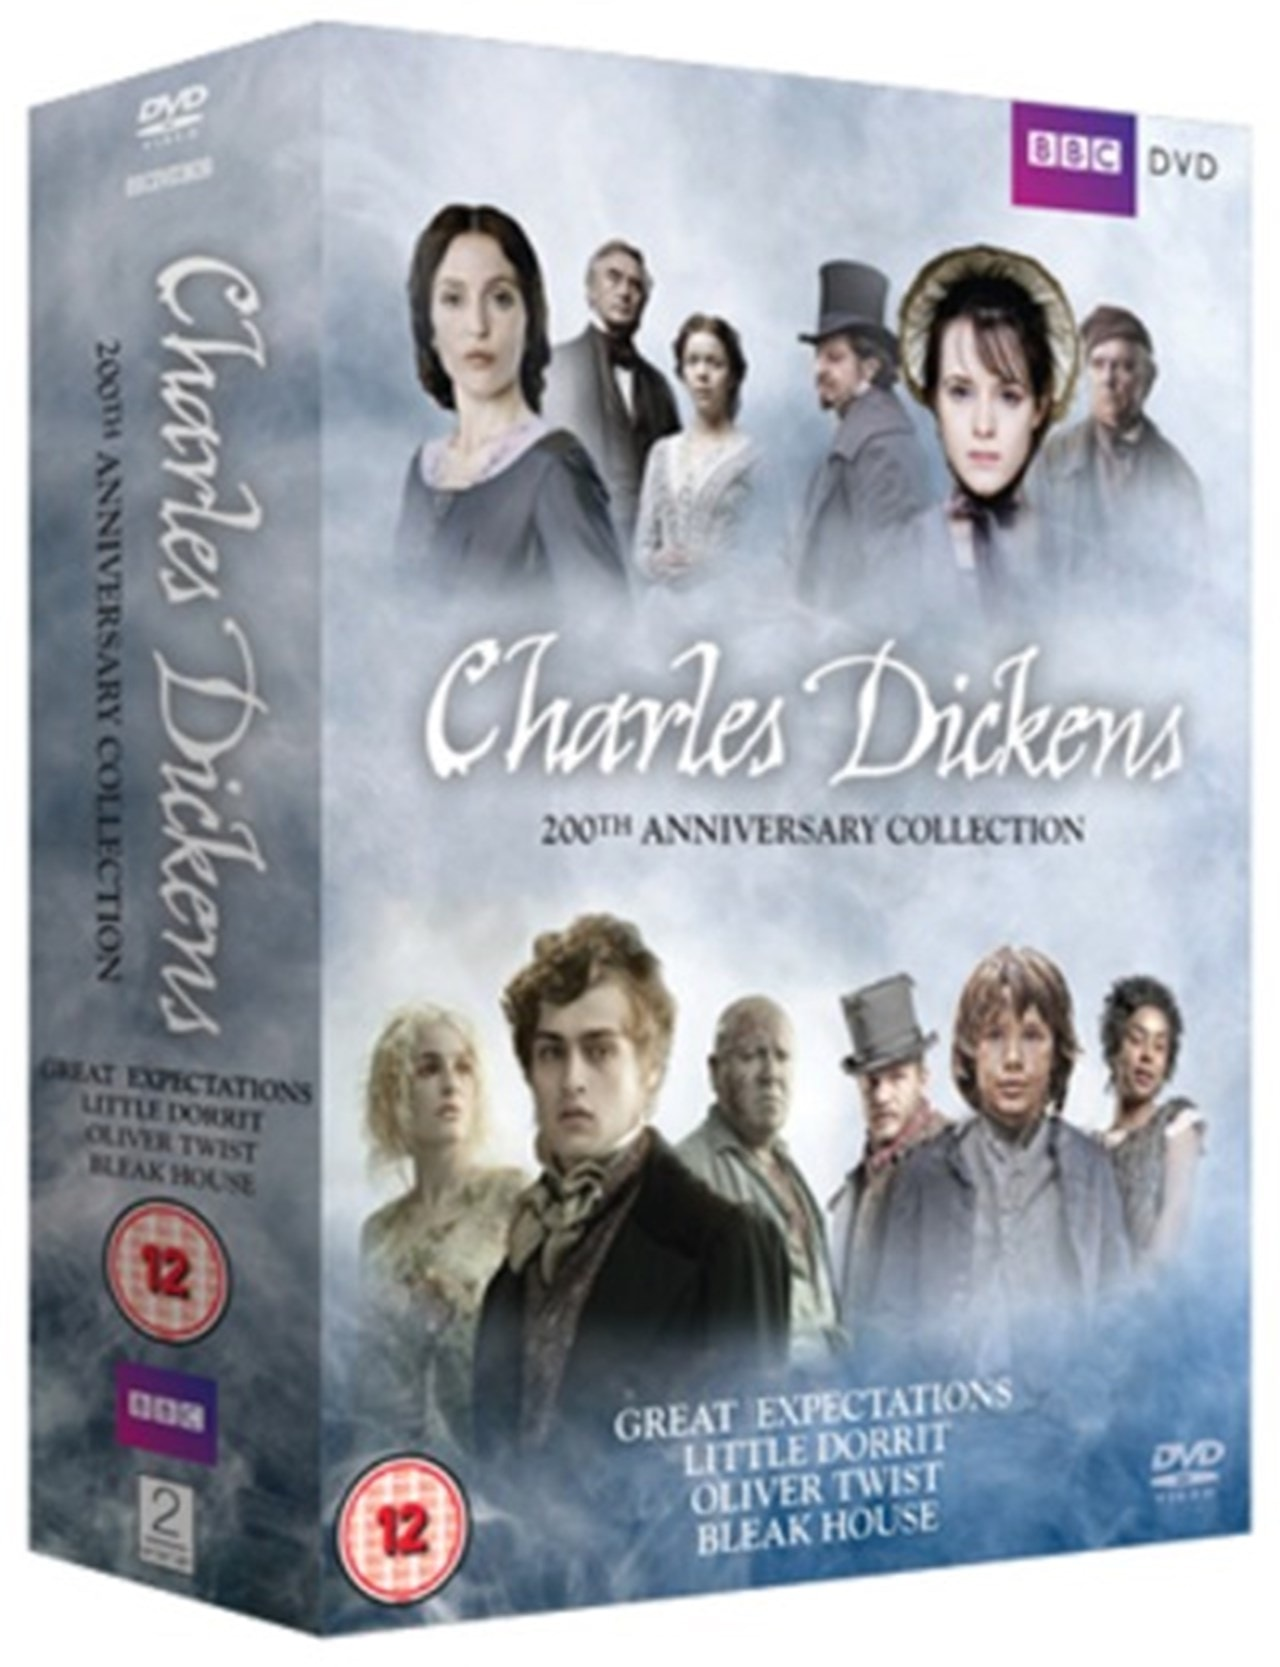 Charles Dickens 200th Anniversary Collection Dvd Box Set Free Shipping Over 20 Hmv Store